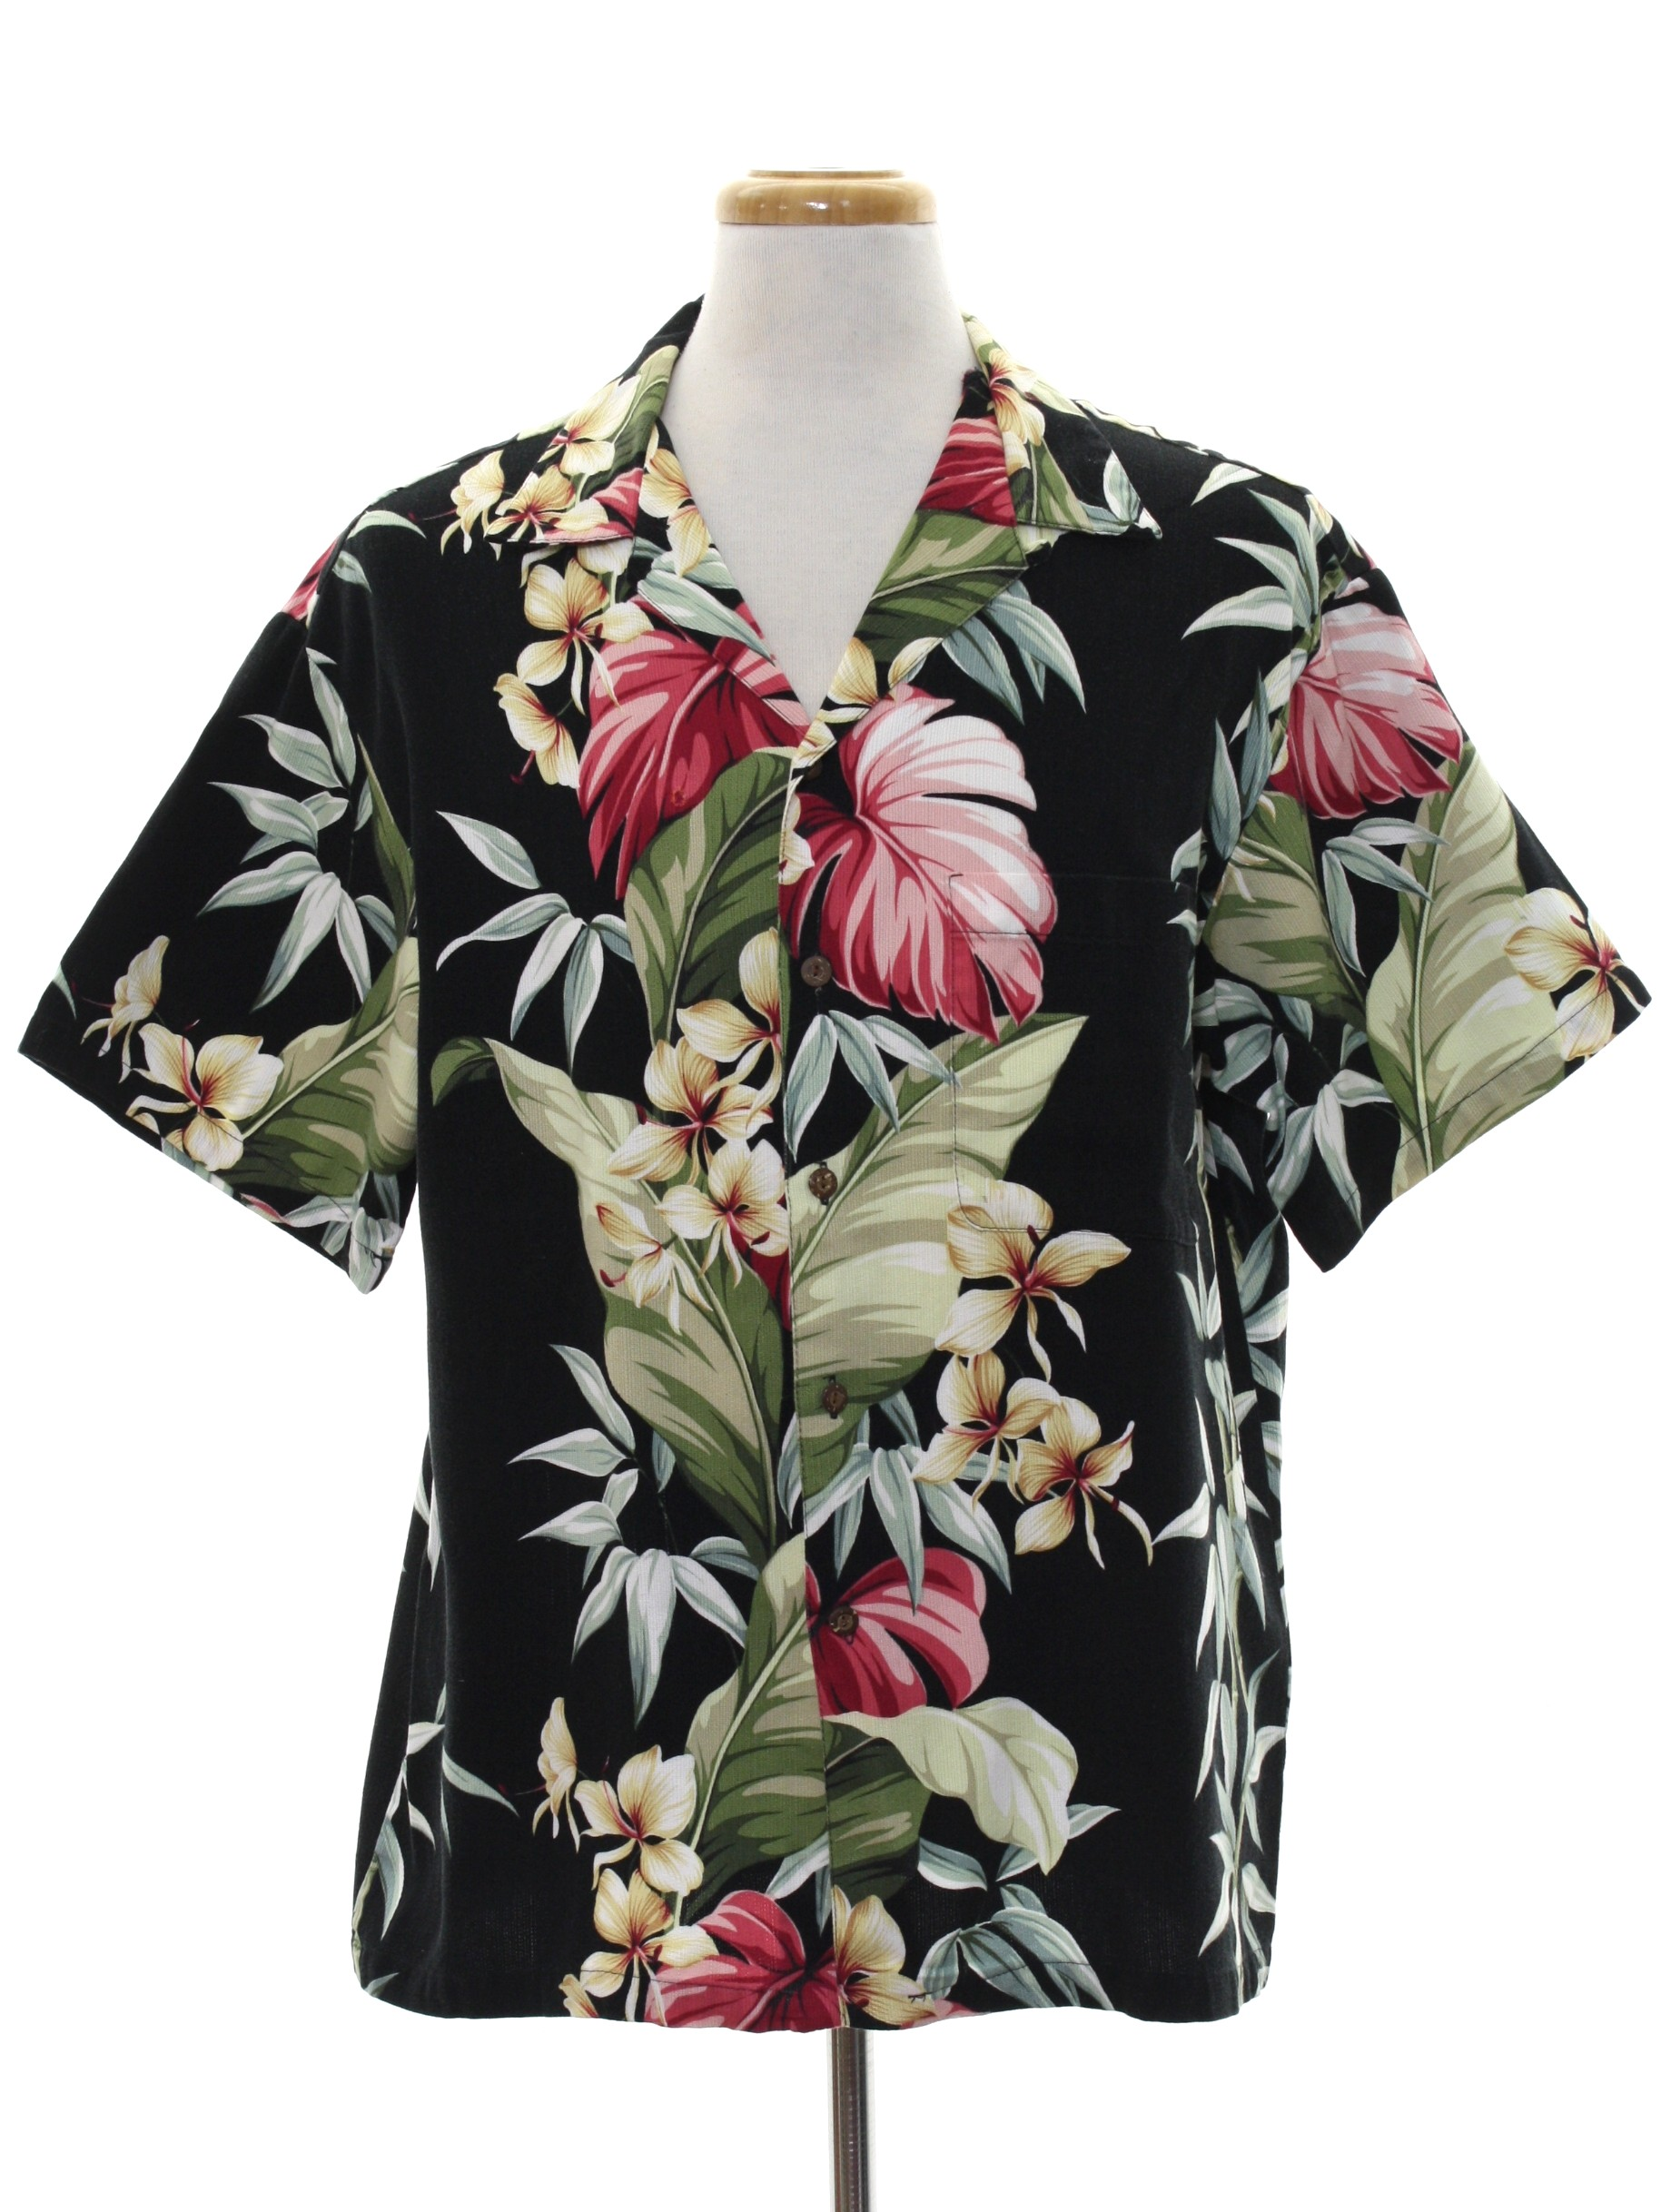 e727dc465 1990's Iolani Made in Hawaii Mens Hawaiian Shirt $32.00 In stock. Item No.  336145-MM15912